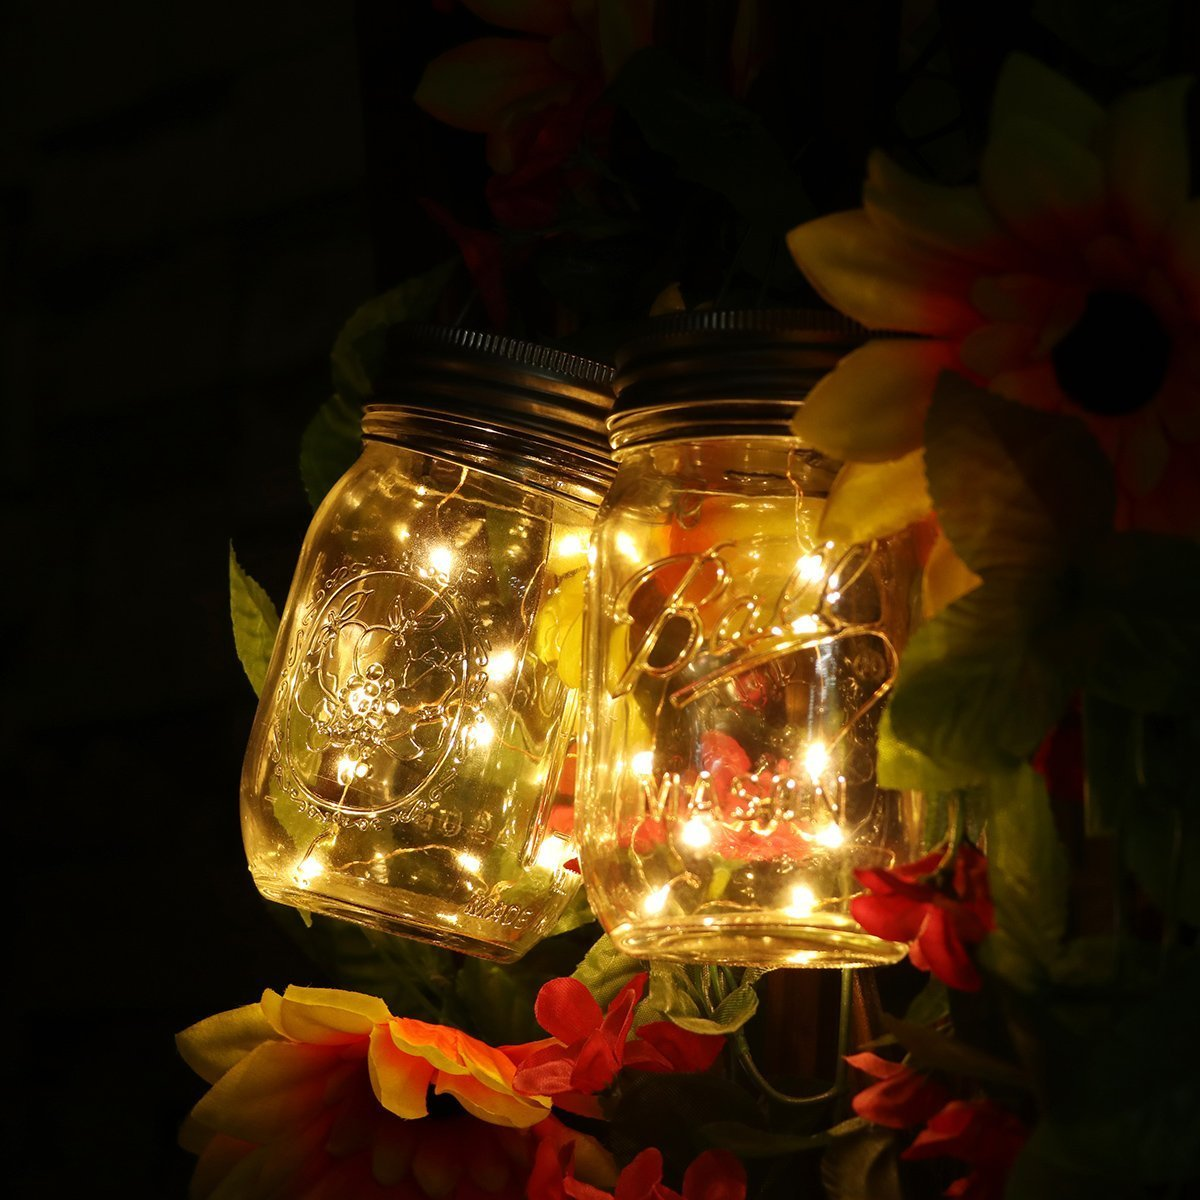 Solar Mason Jar Lights, Adecorty Outdoor Hanging Lights 2 Pack 20 LED String Fairy Star Firefly Jar Lights (Jars & Hangers Included) Warm White Waterproof Solar Lanterns for Garden Patio Outdoor Decor by Adecorty (Image #2)